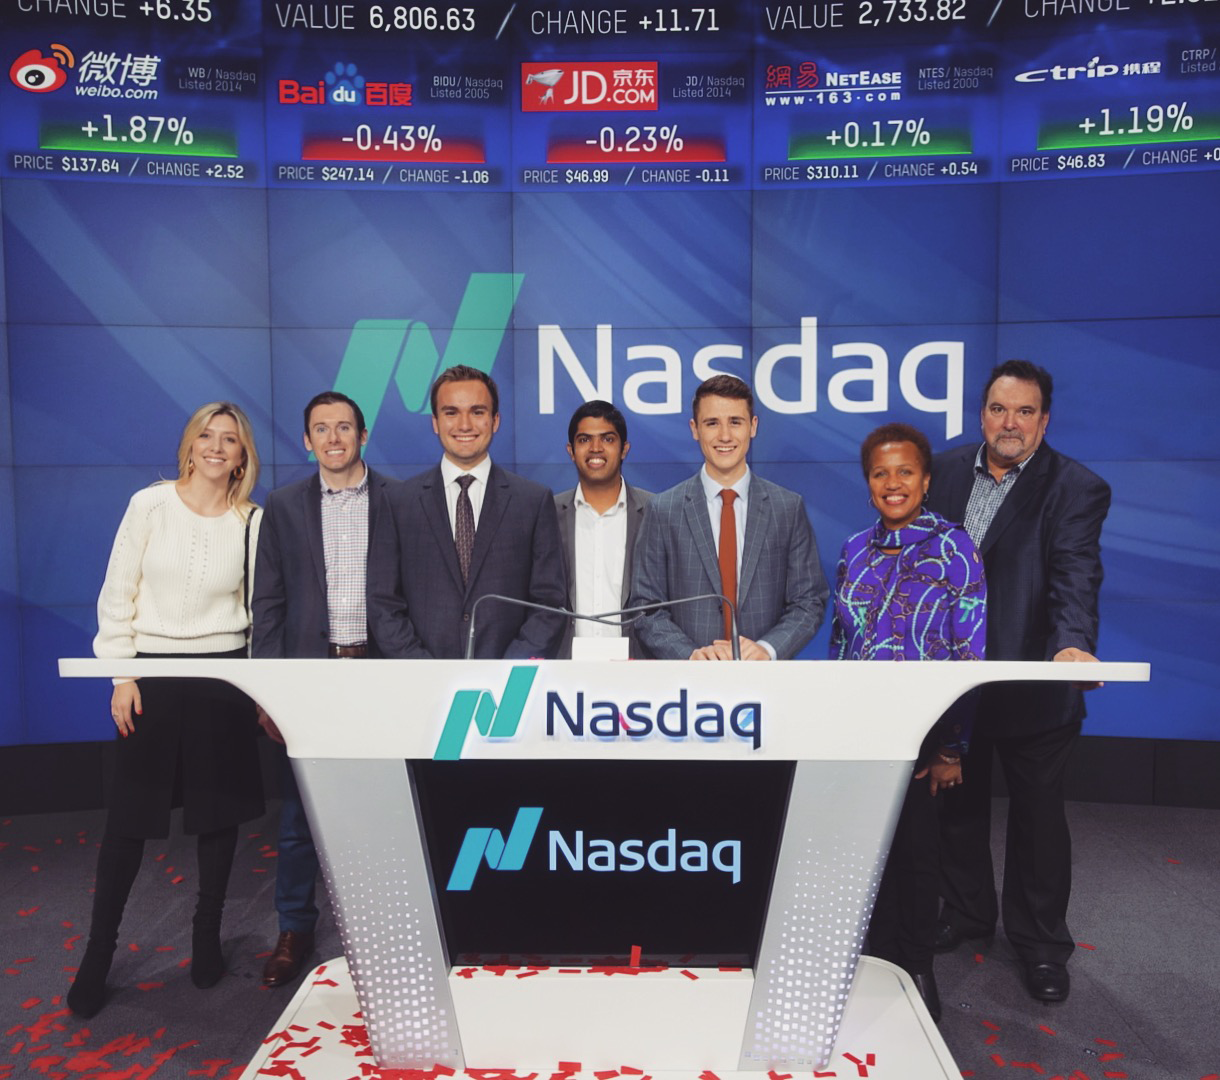 Members of the winning team from the 2017-2018 competition, the New Haven Bulldogs, at the Nasdaq with members of Voleo.